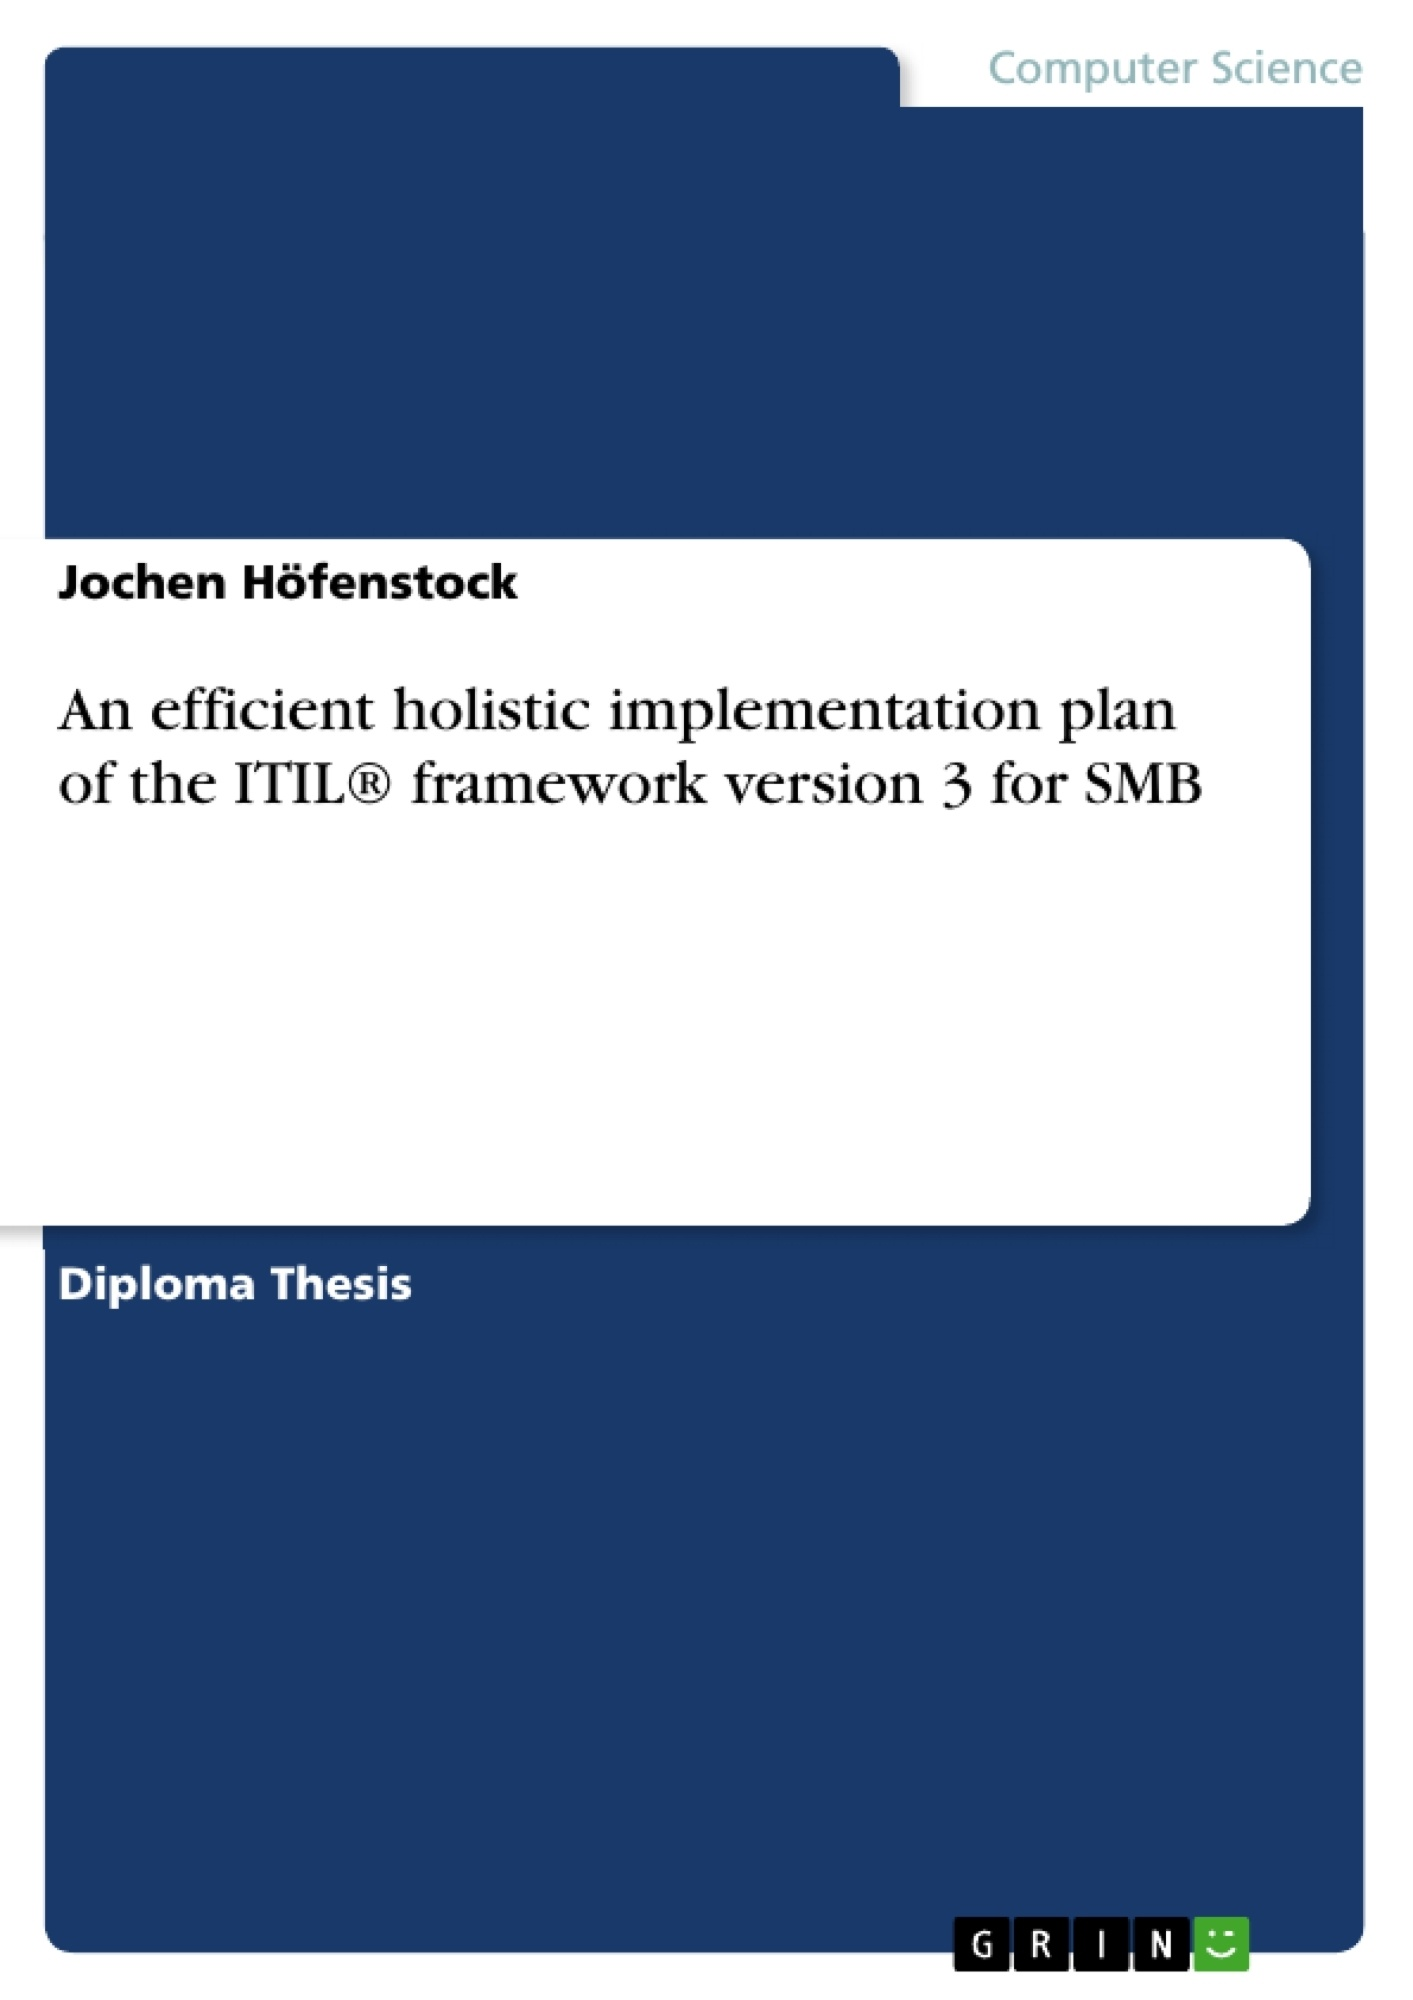 Title: An efficient holistic implementation plan of the ITIL® framework version 3 for SMB